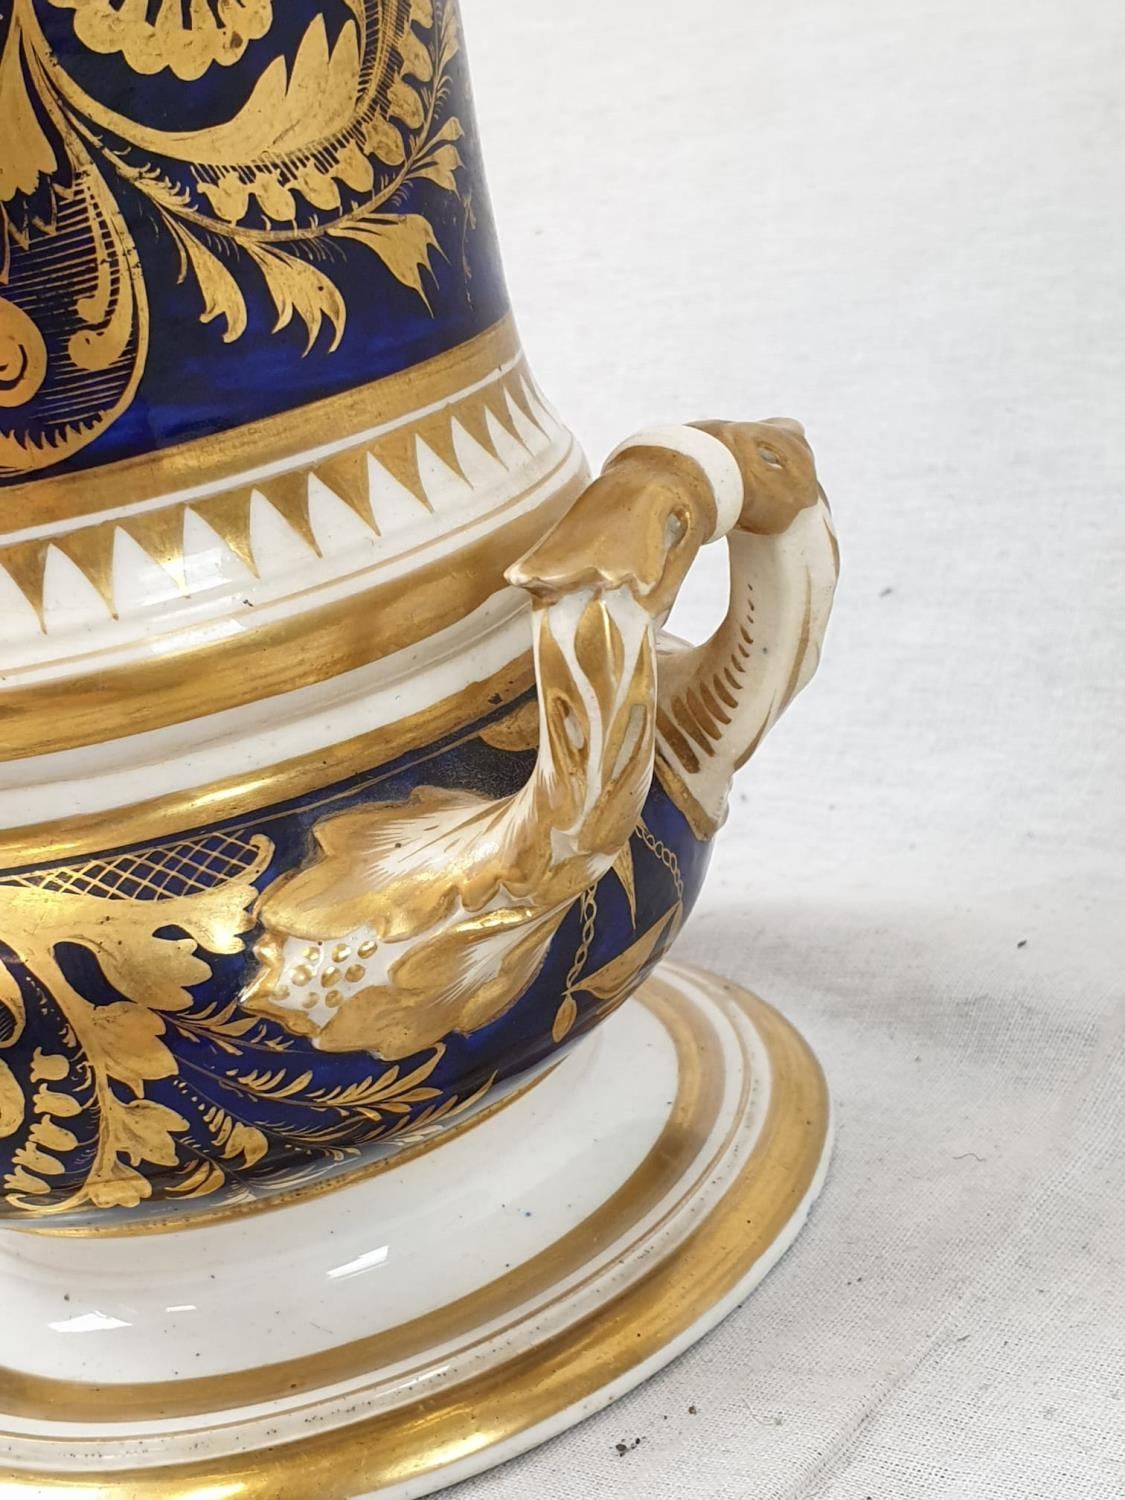 Royal Derby (Crown): In Spain Vase. Spanish 1830. Beautifully Decorated but damaged firing cracks. - Image 9 of 11